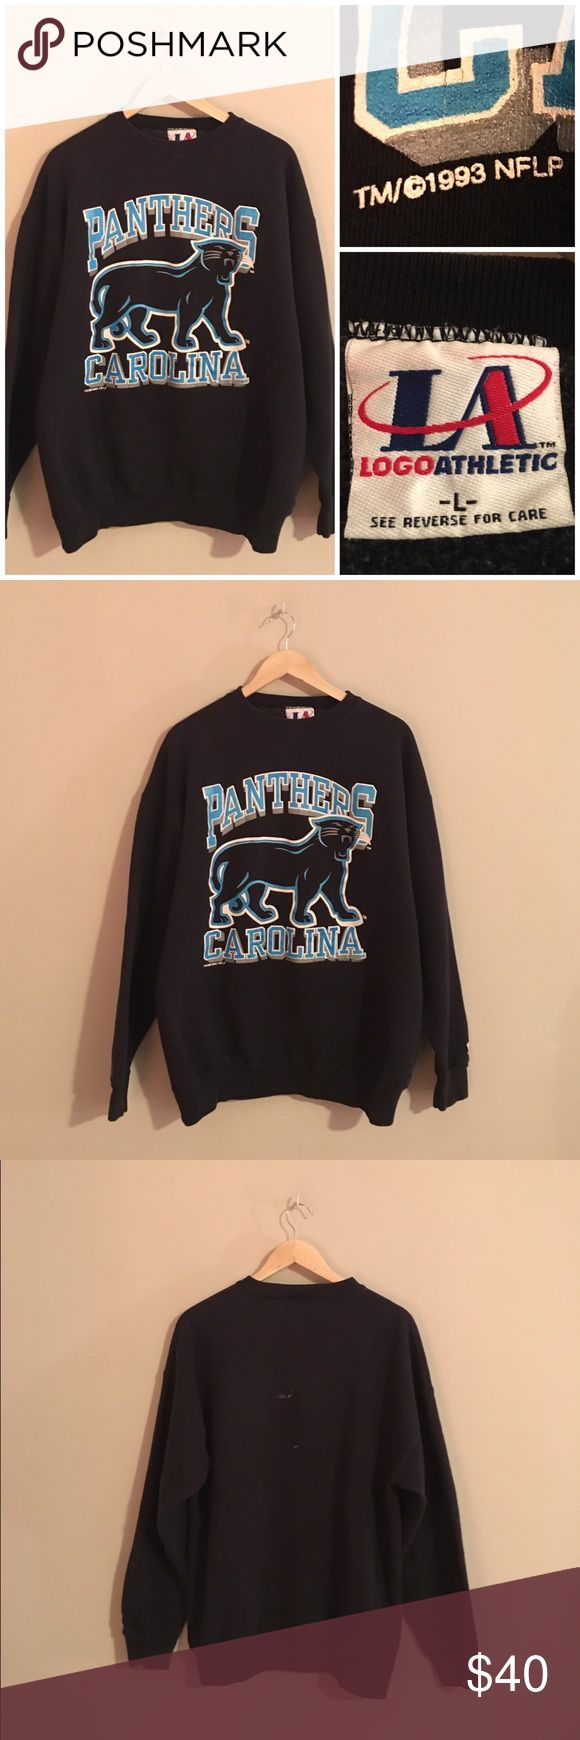 Vintage 90s Carolina Panthers NFL Sweatshirt Awesome vintage 1990s Carolina Panthers crewneck sweatshirt size Large. Only defect is a small bleach stain on the back as shown in picture. Vintage Tops Sweatshirts & Hoodies